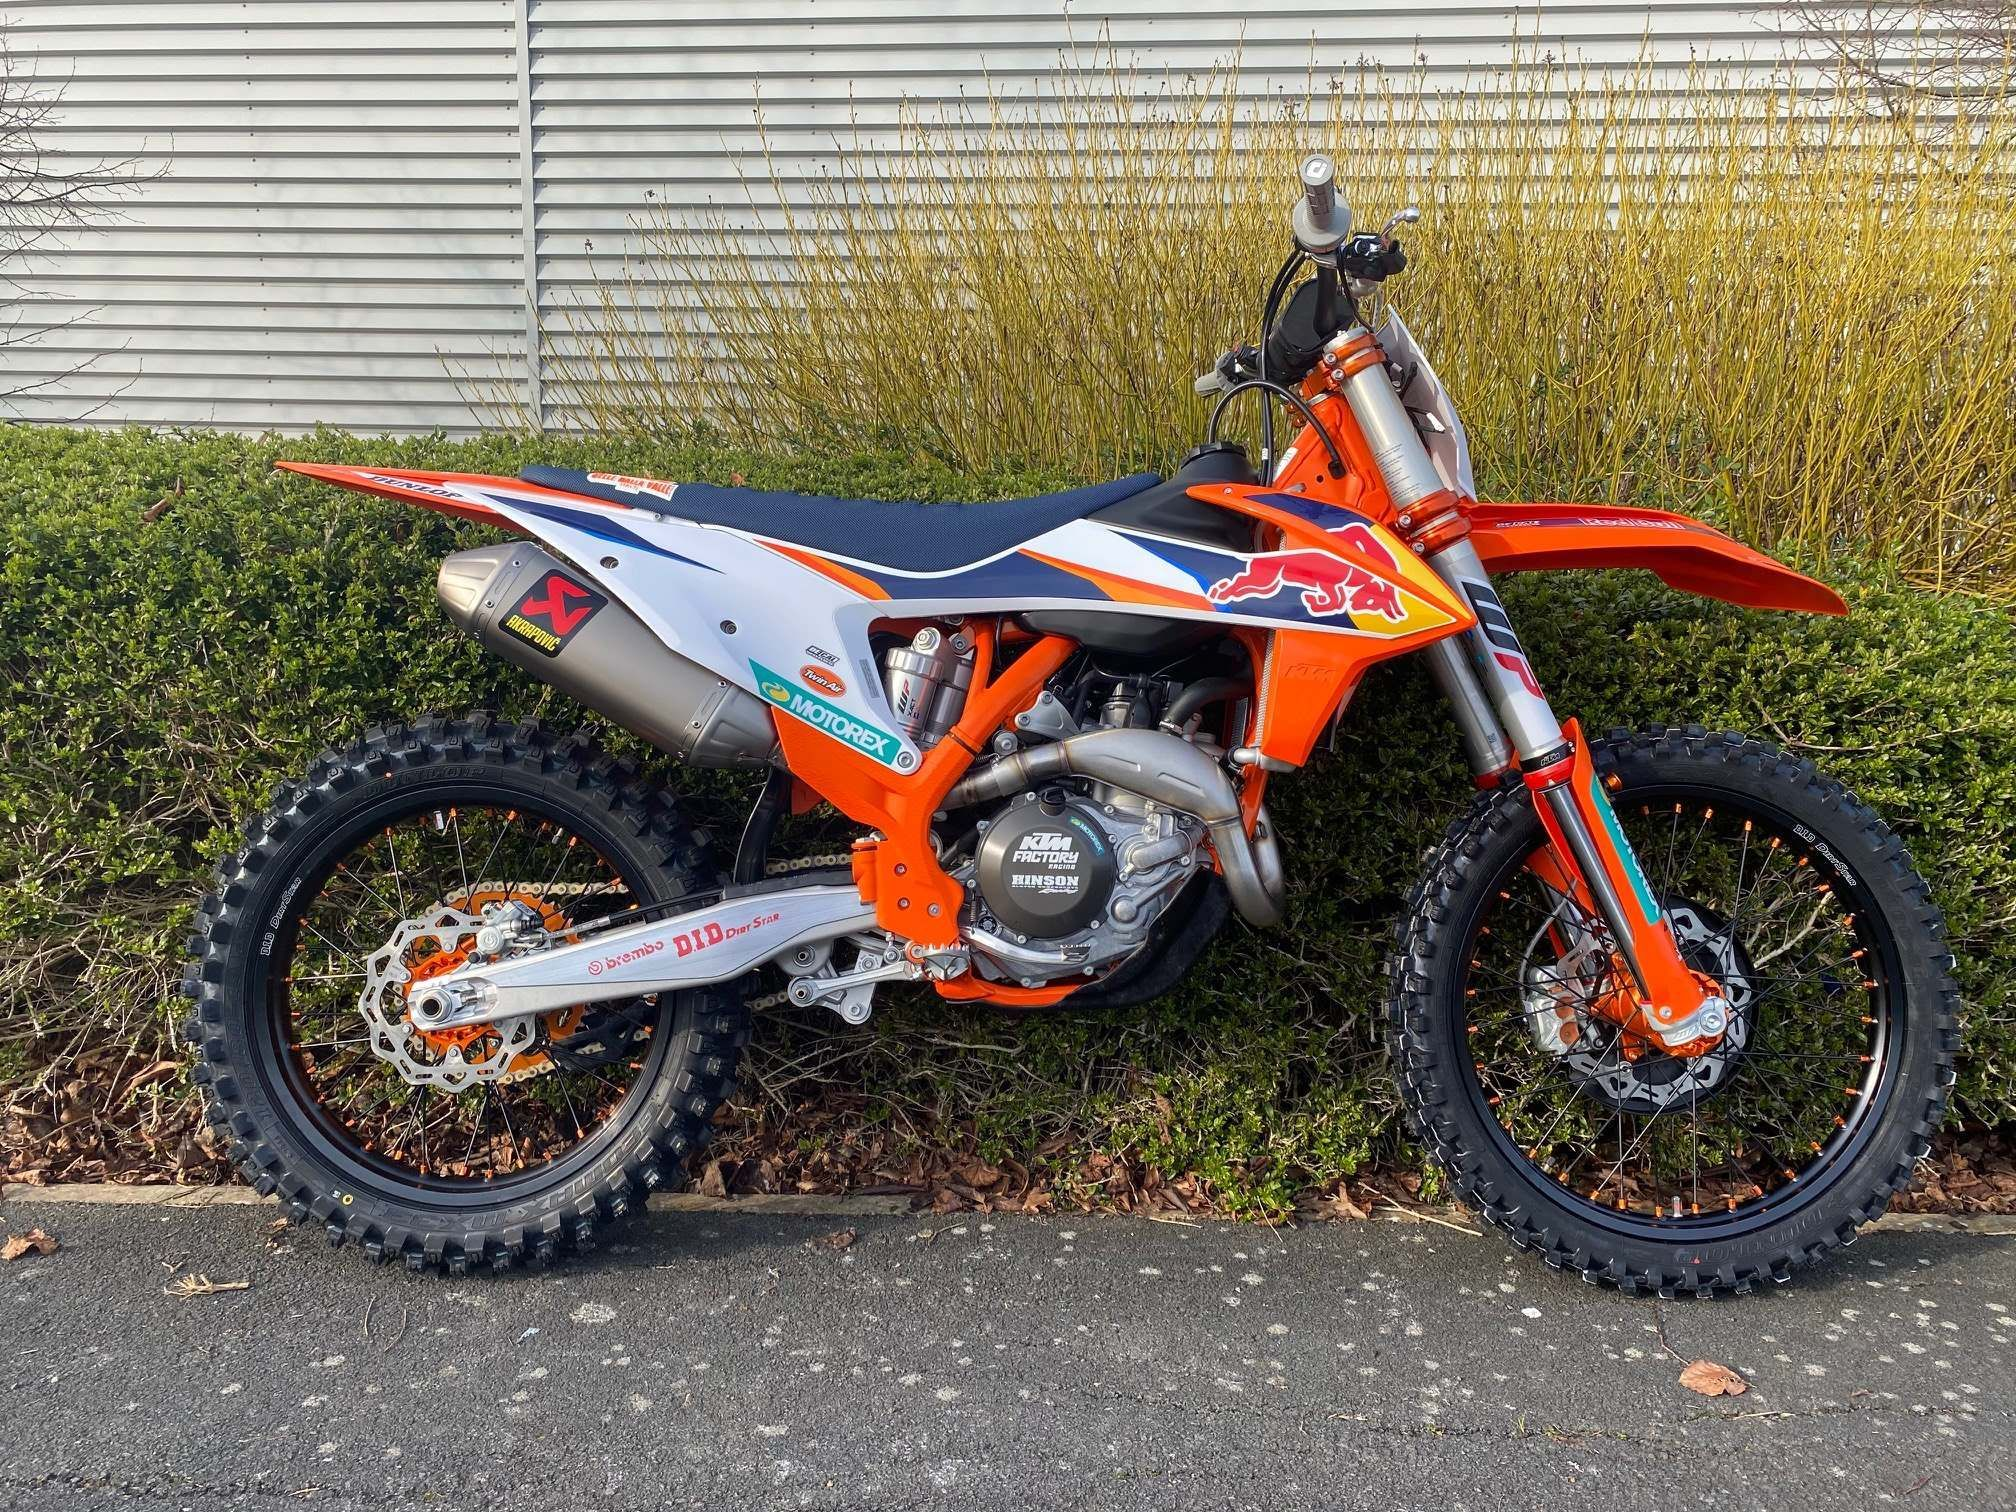 2020 Ktm 450 Sx F 2020 450 Sx F Factory Edition Ams Motorcycles